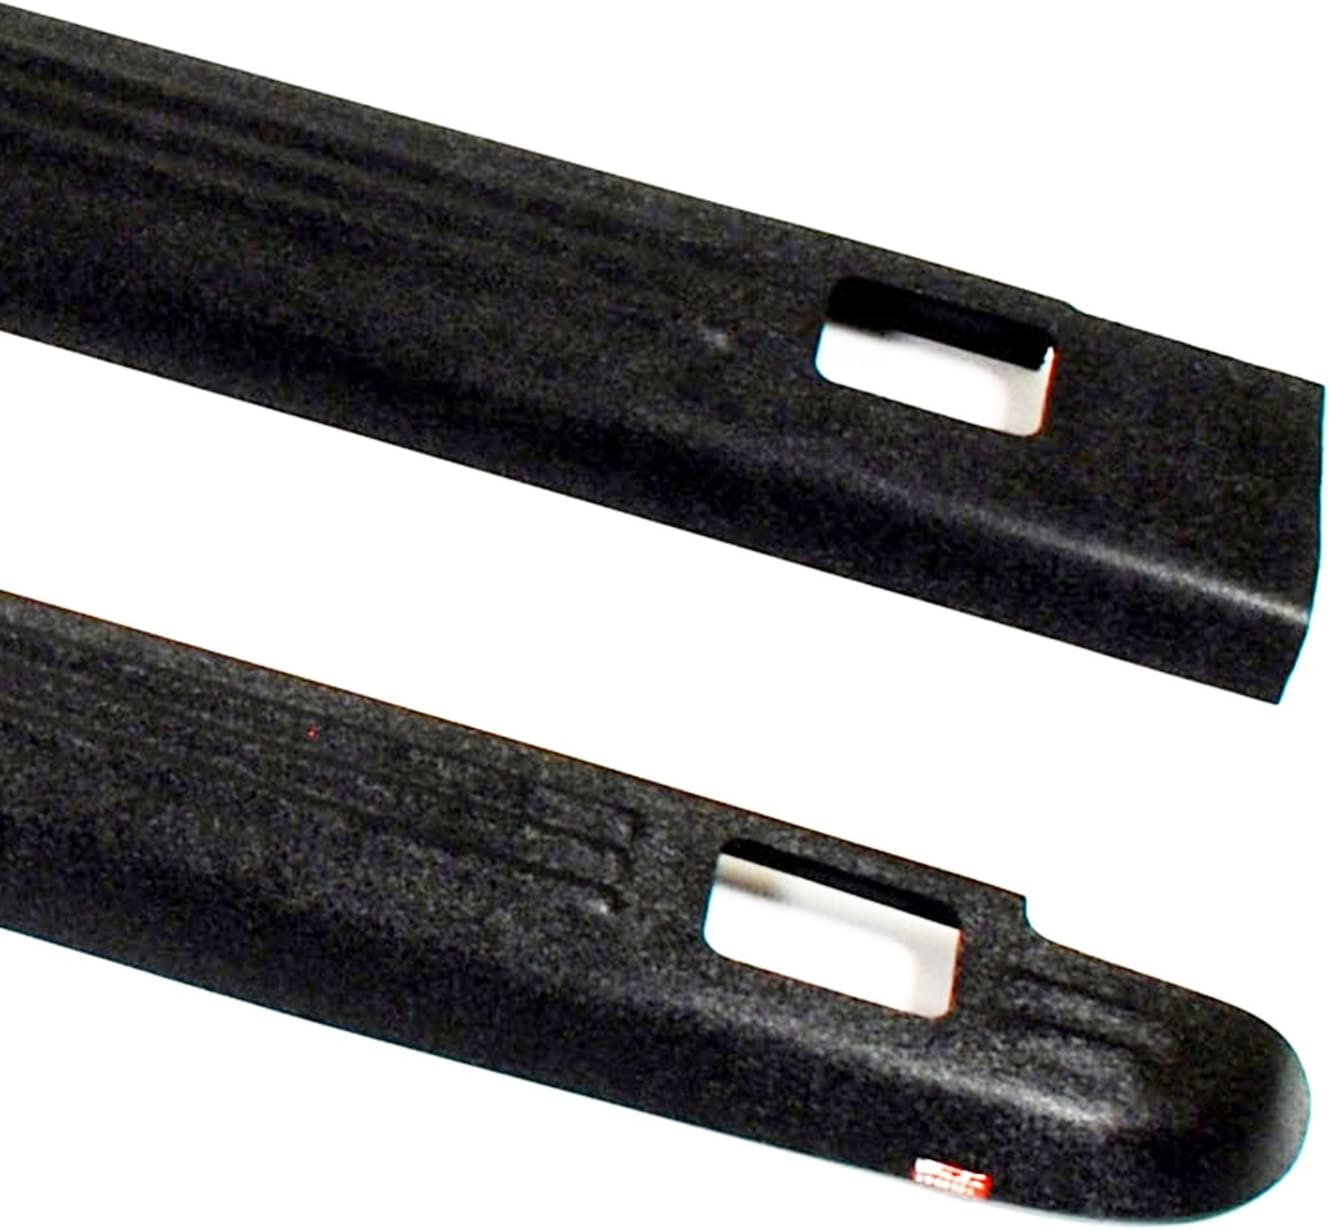 Set of 2 Wade 72-01111 Truck Bed Rail Caps Black Ribbed Finish with Stake Holes for 1988-1998 Chevrolet GMC 1500 2500 3500 with 6.5ft Bed